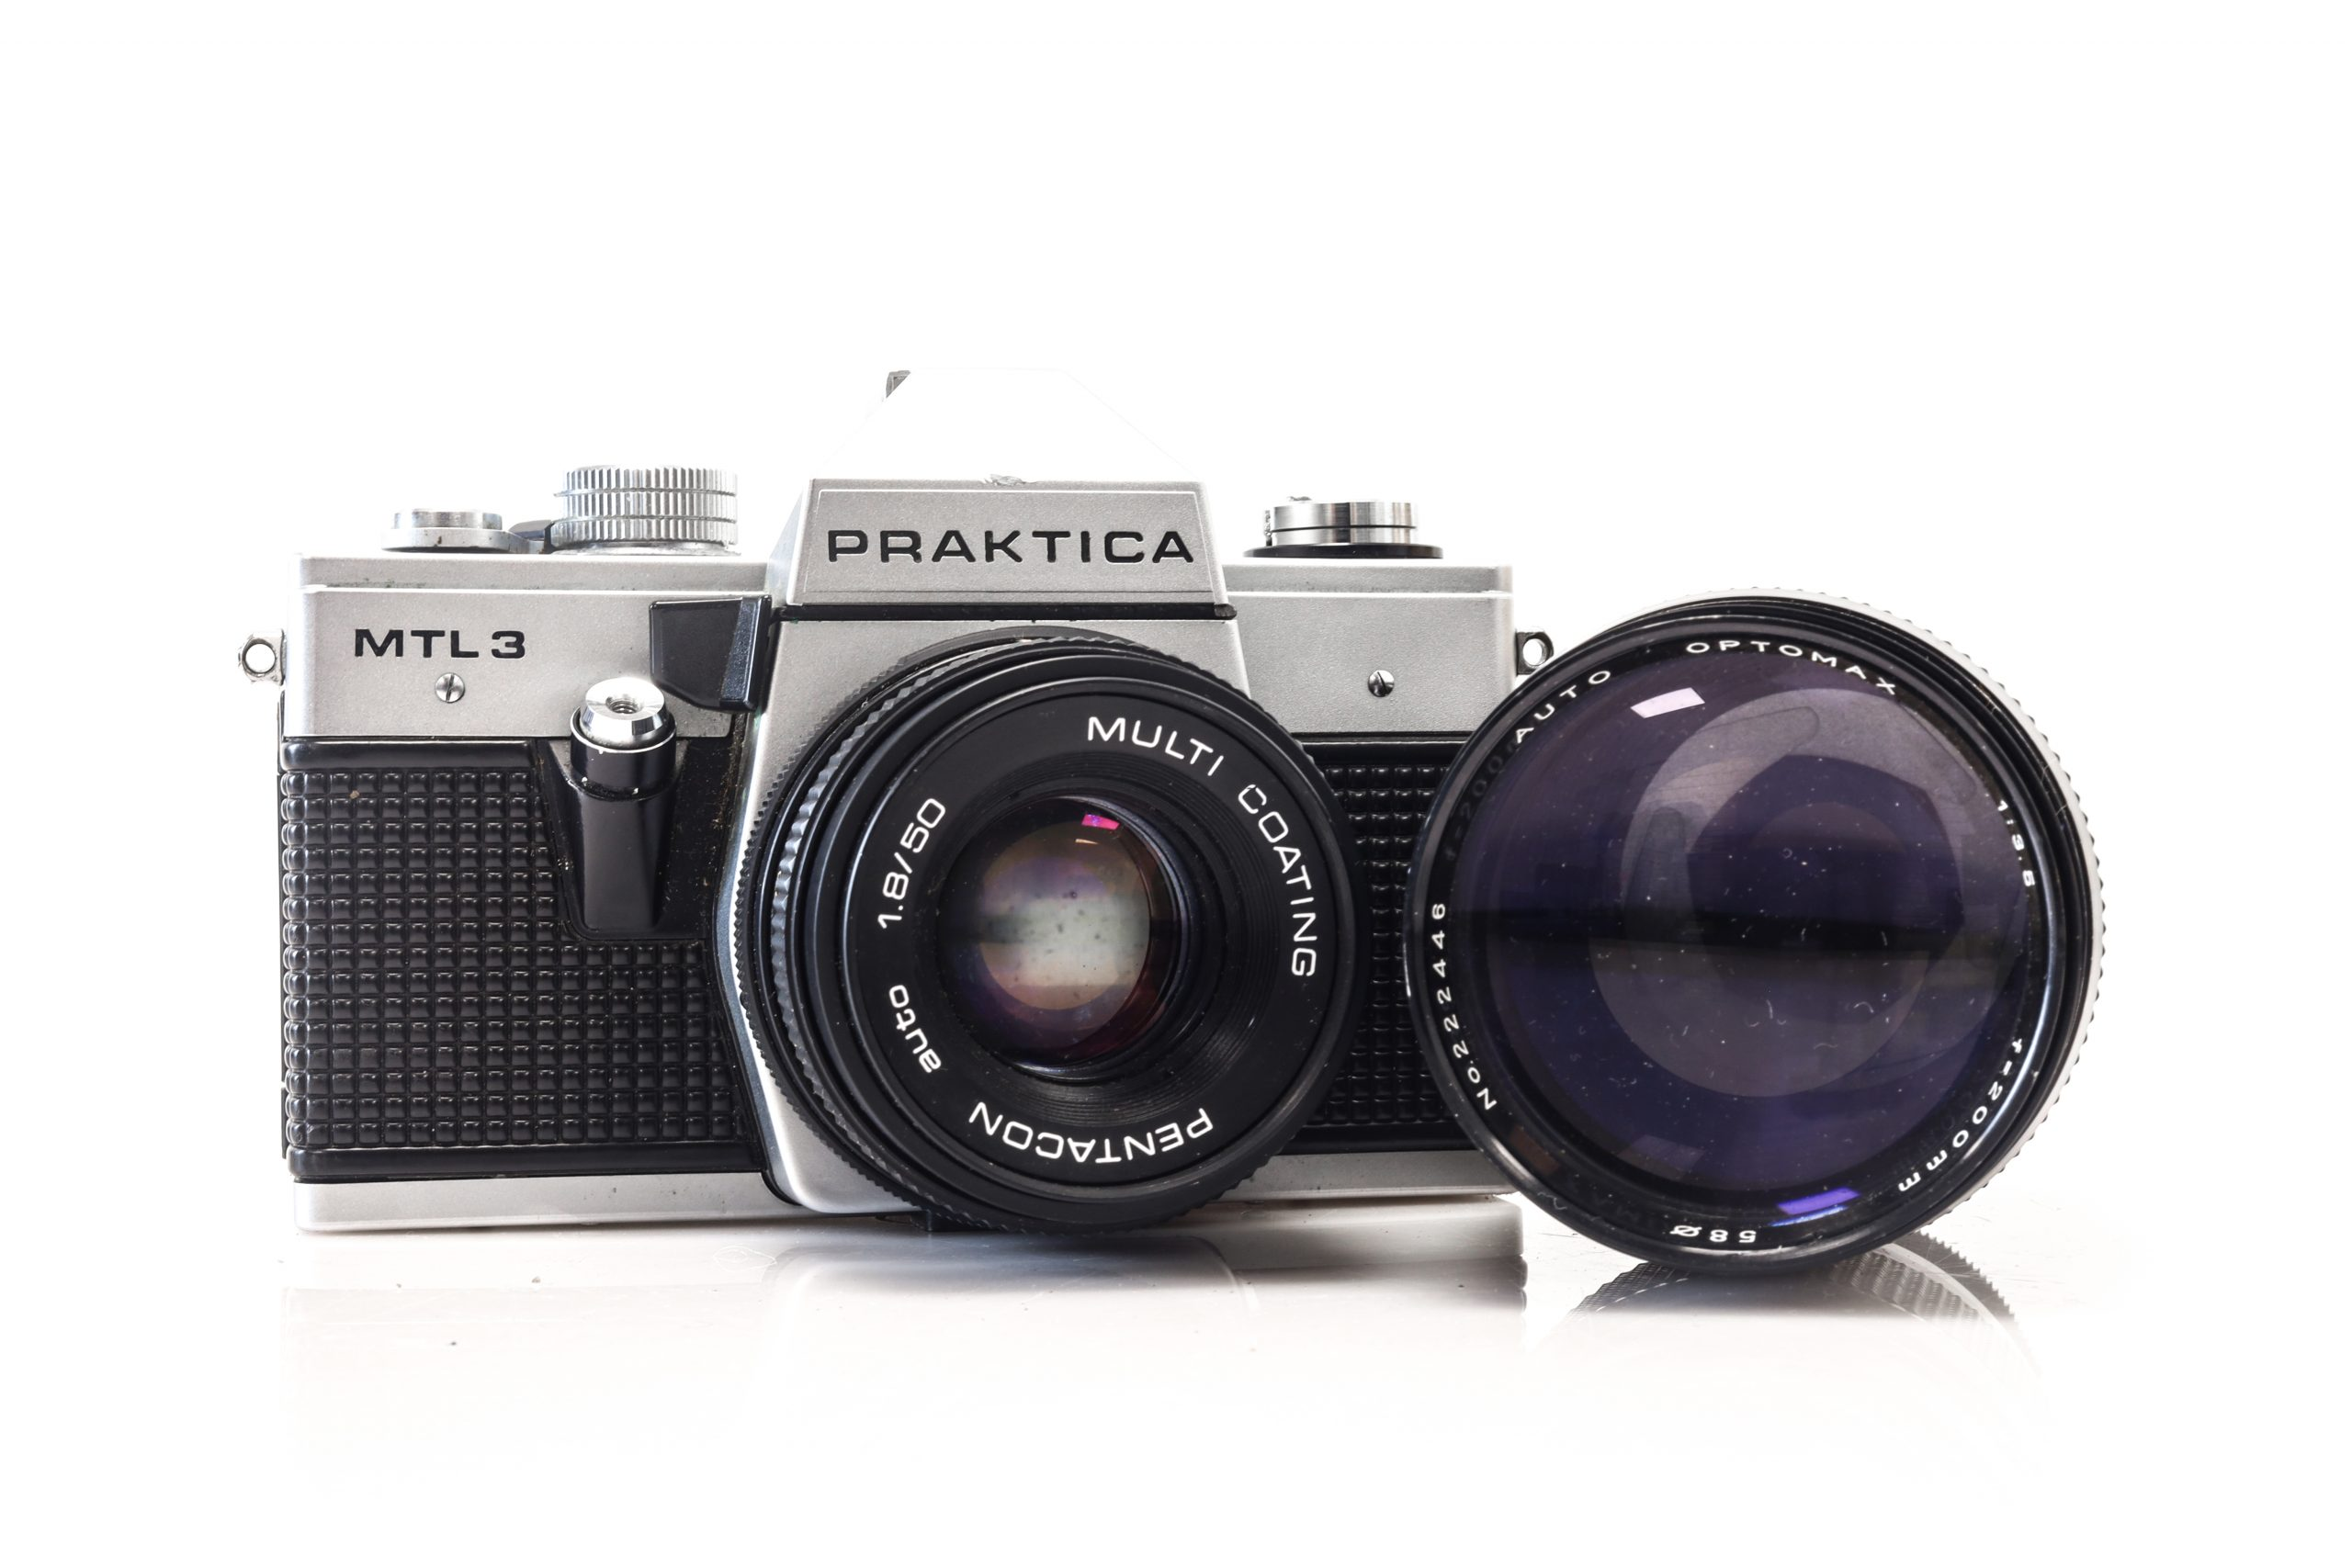 Praktica MTL 3 35mm Film Camera with Optomax 200mm F3.5 Lens + Faulty 50mm Lens